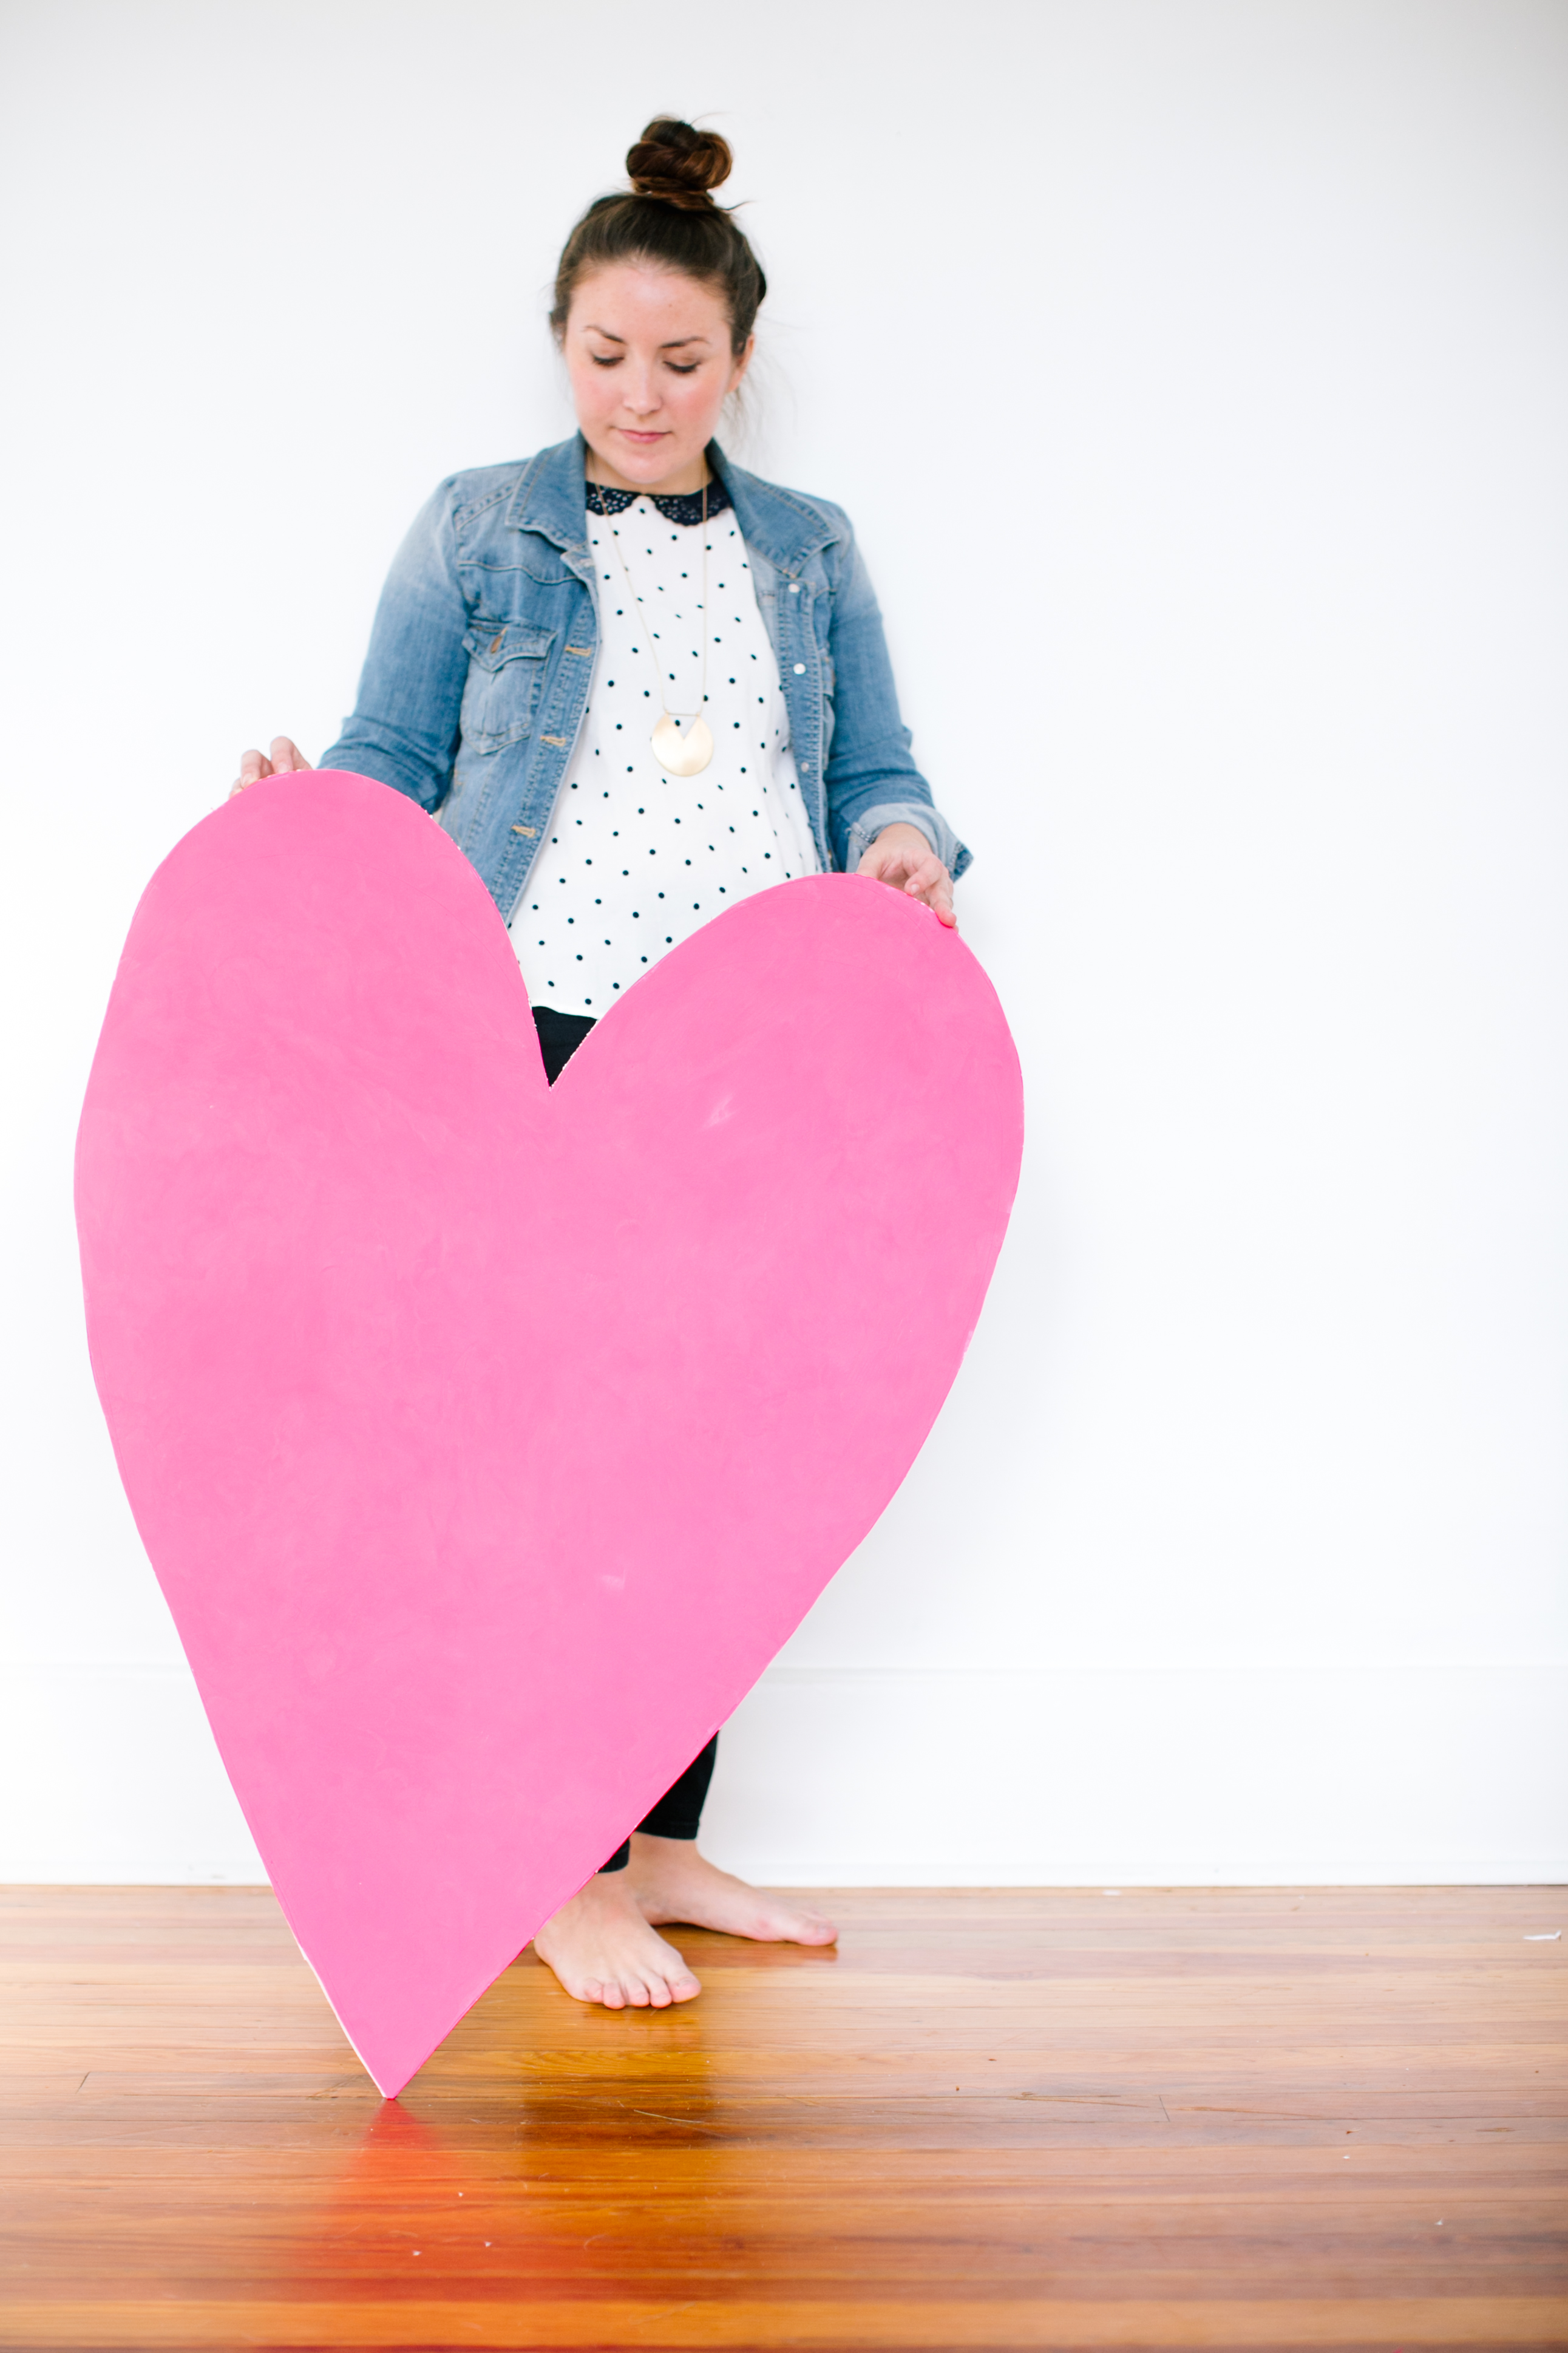 Make This: Giant DIY Heart Art / Prop for Valentine's Day - Paper